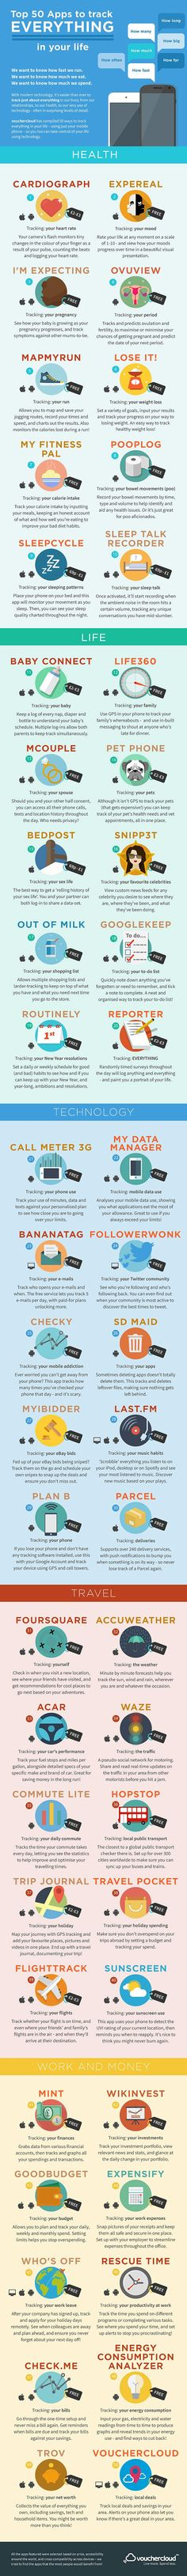 Top 50 Apps to Track Everything in your life #Infographic